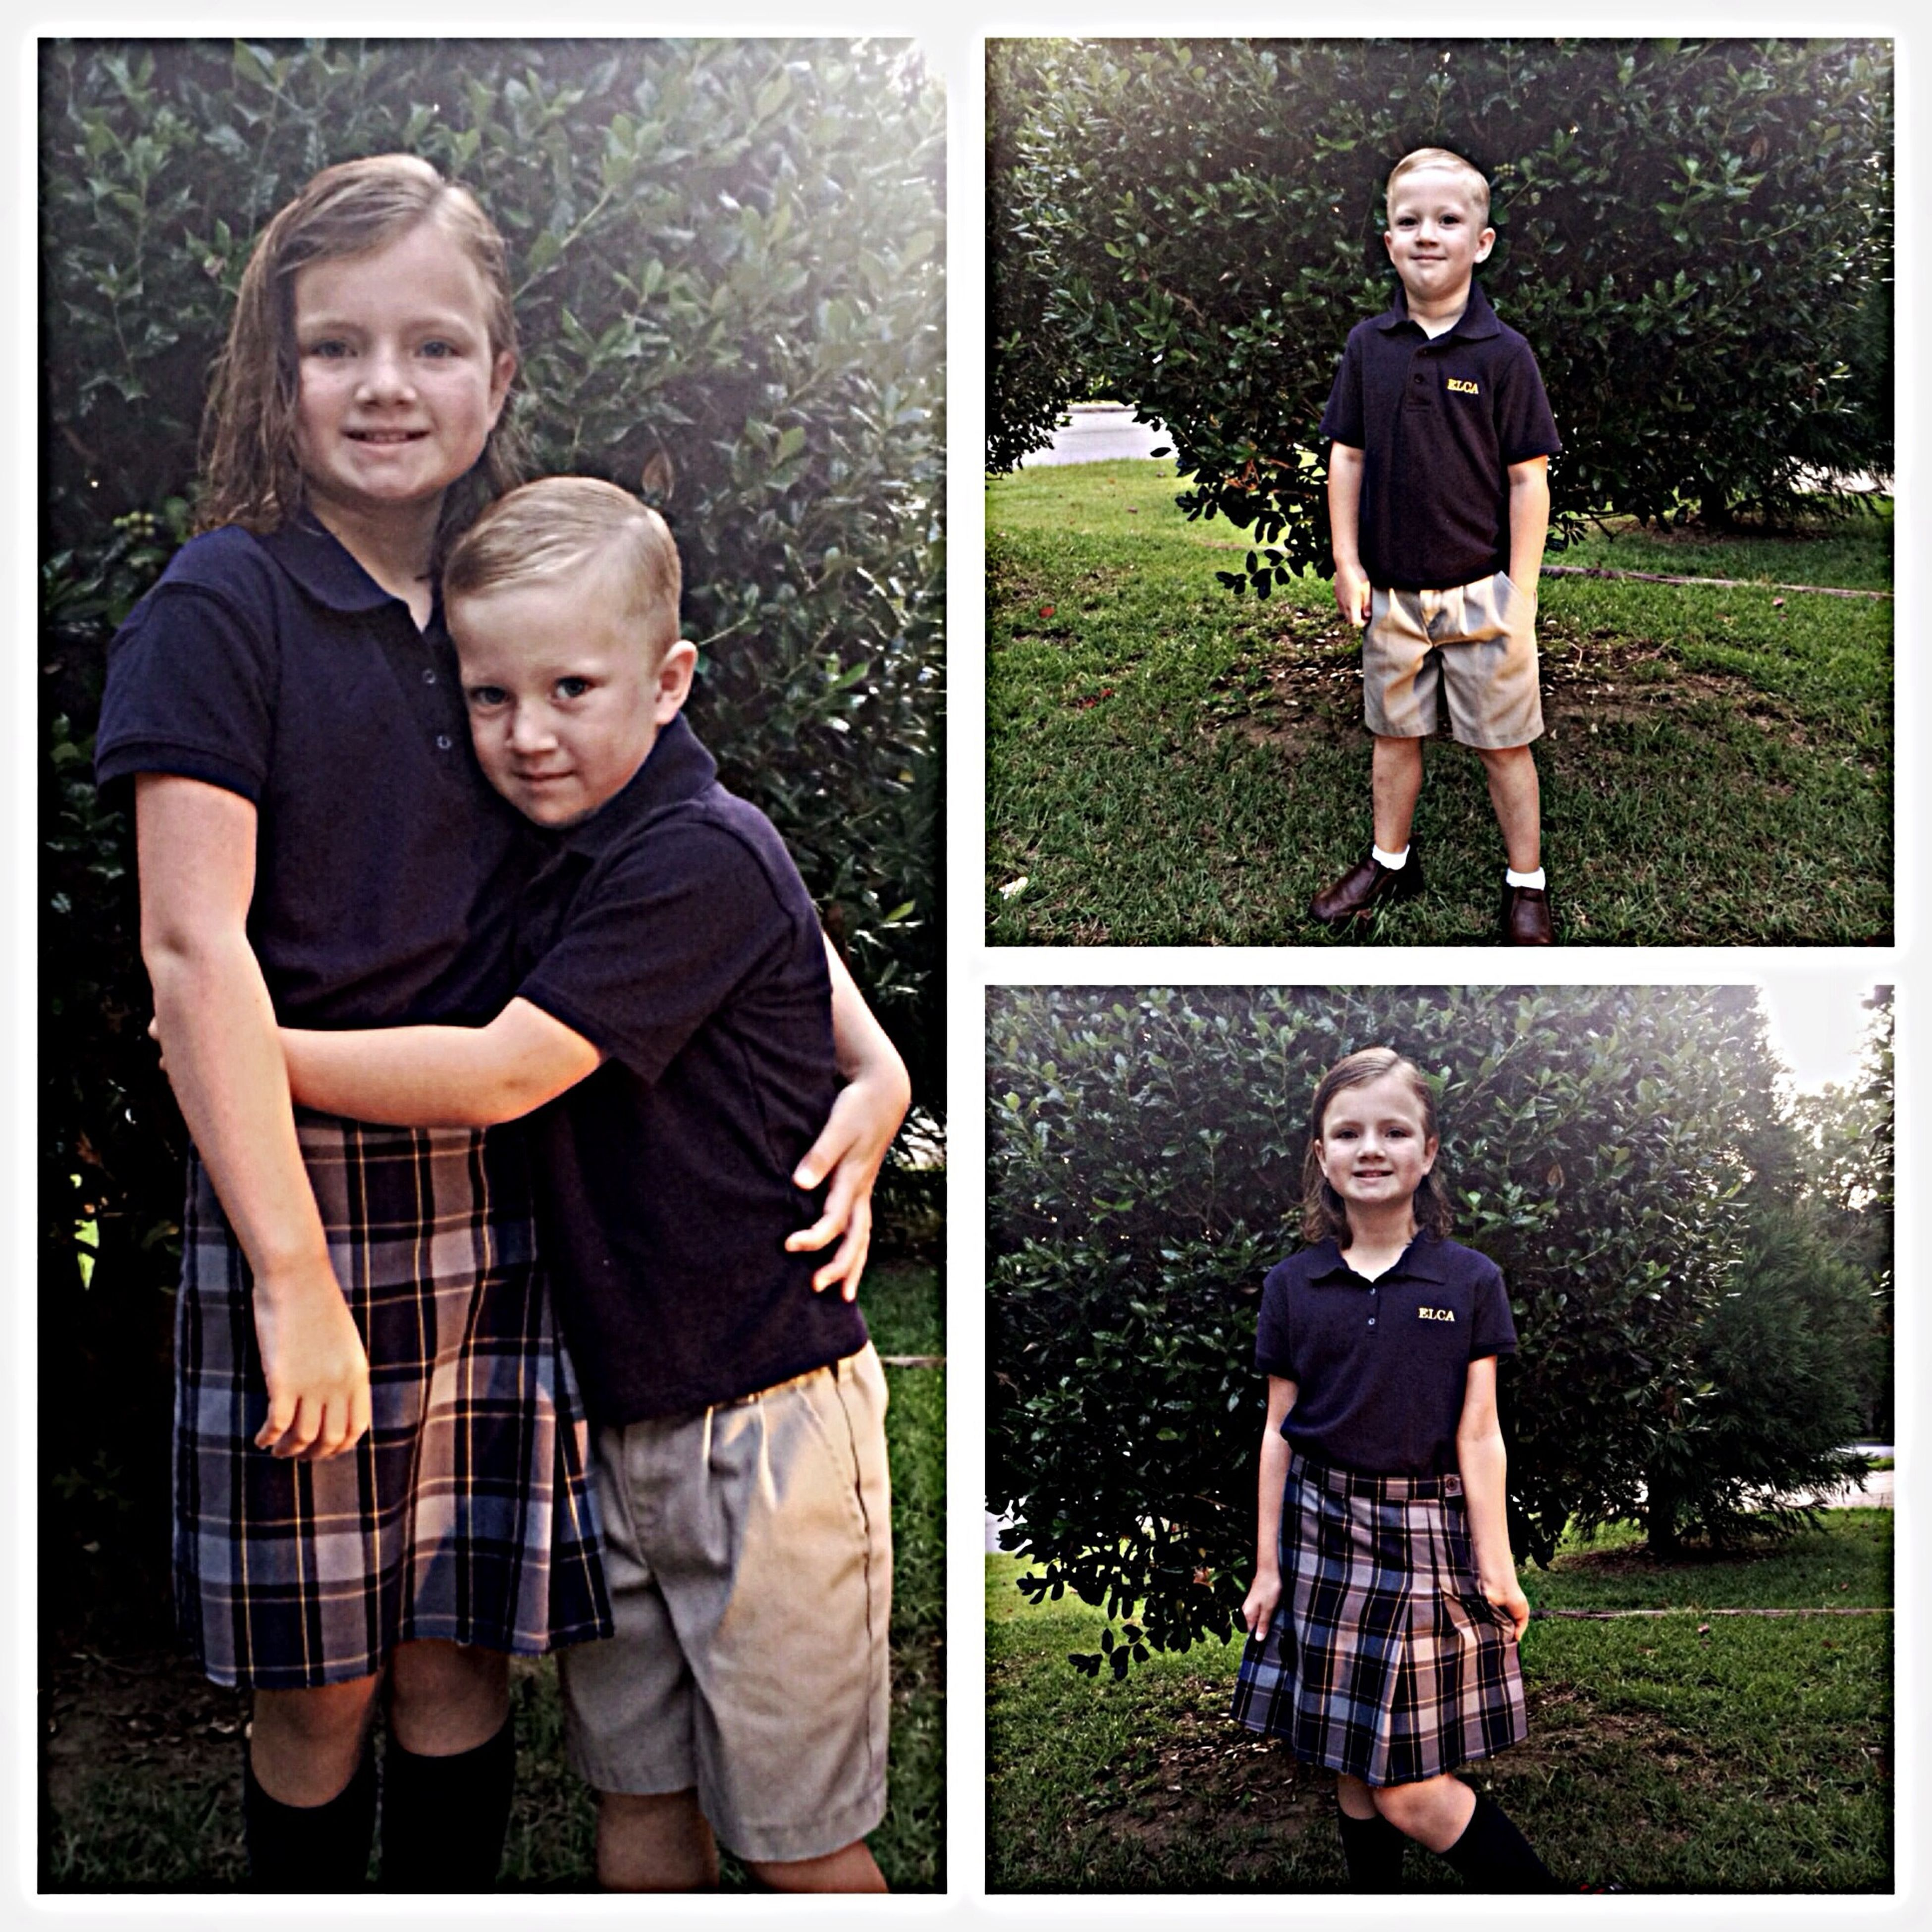 My southern grankids ready for thier first day of school.